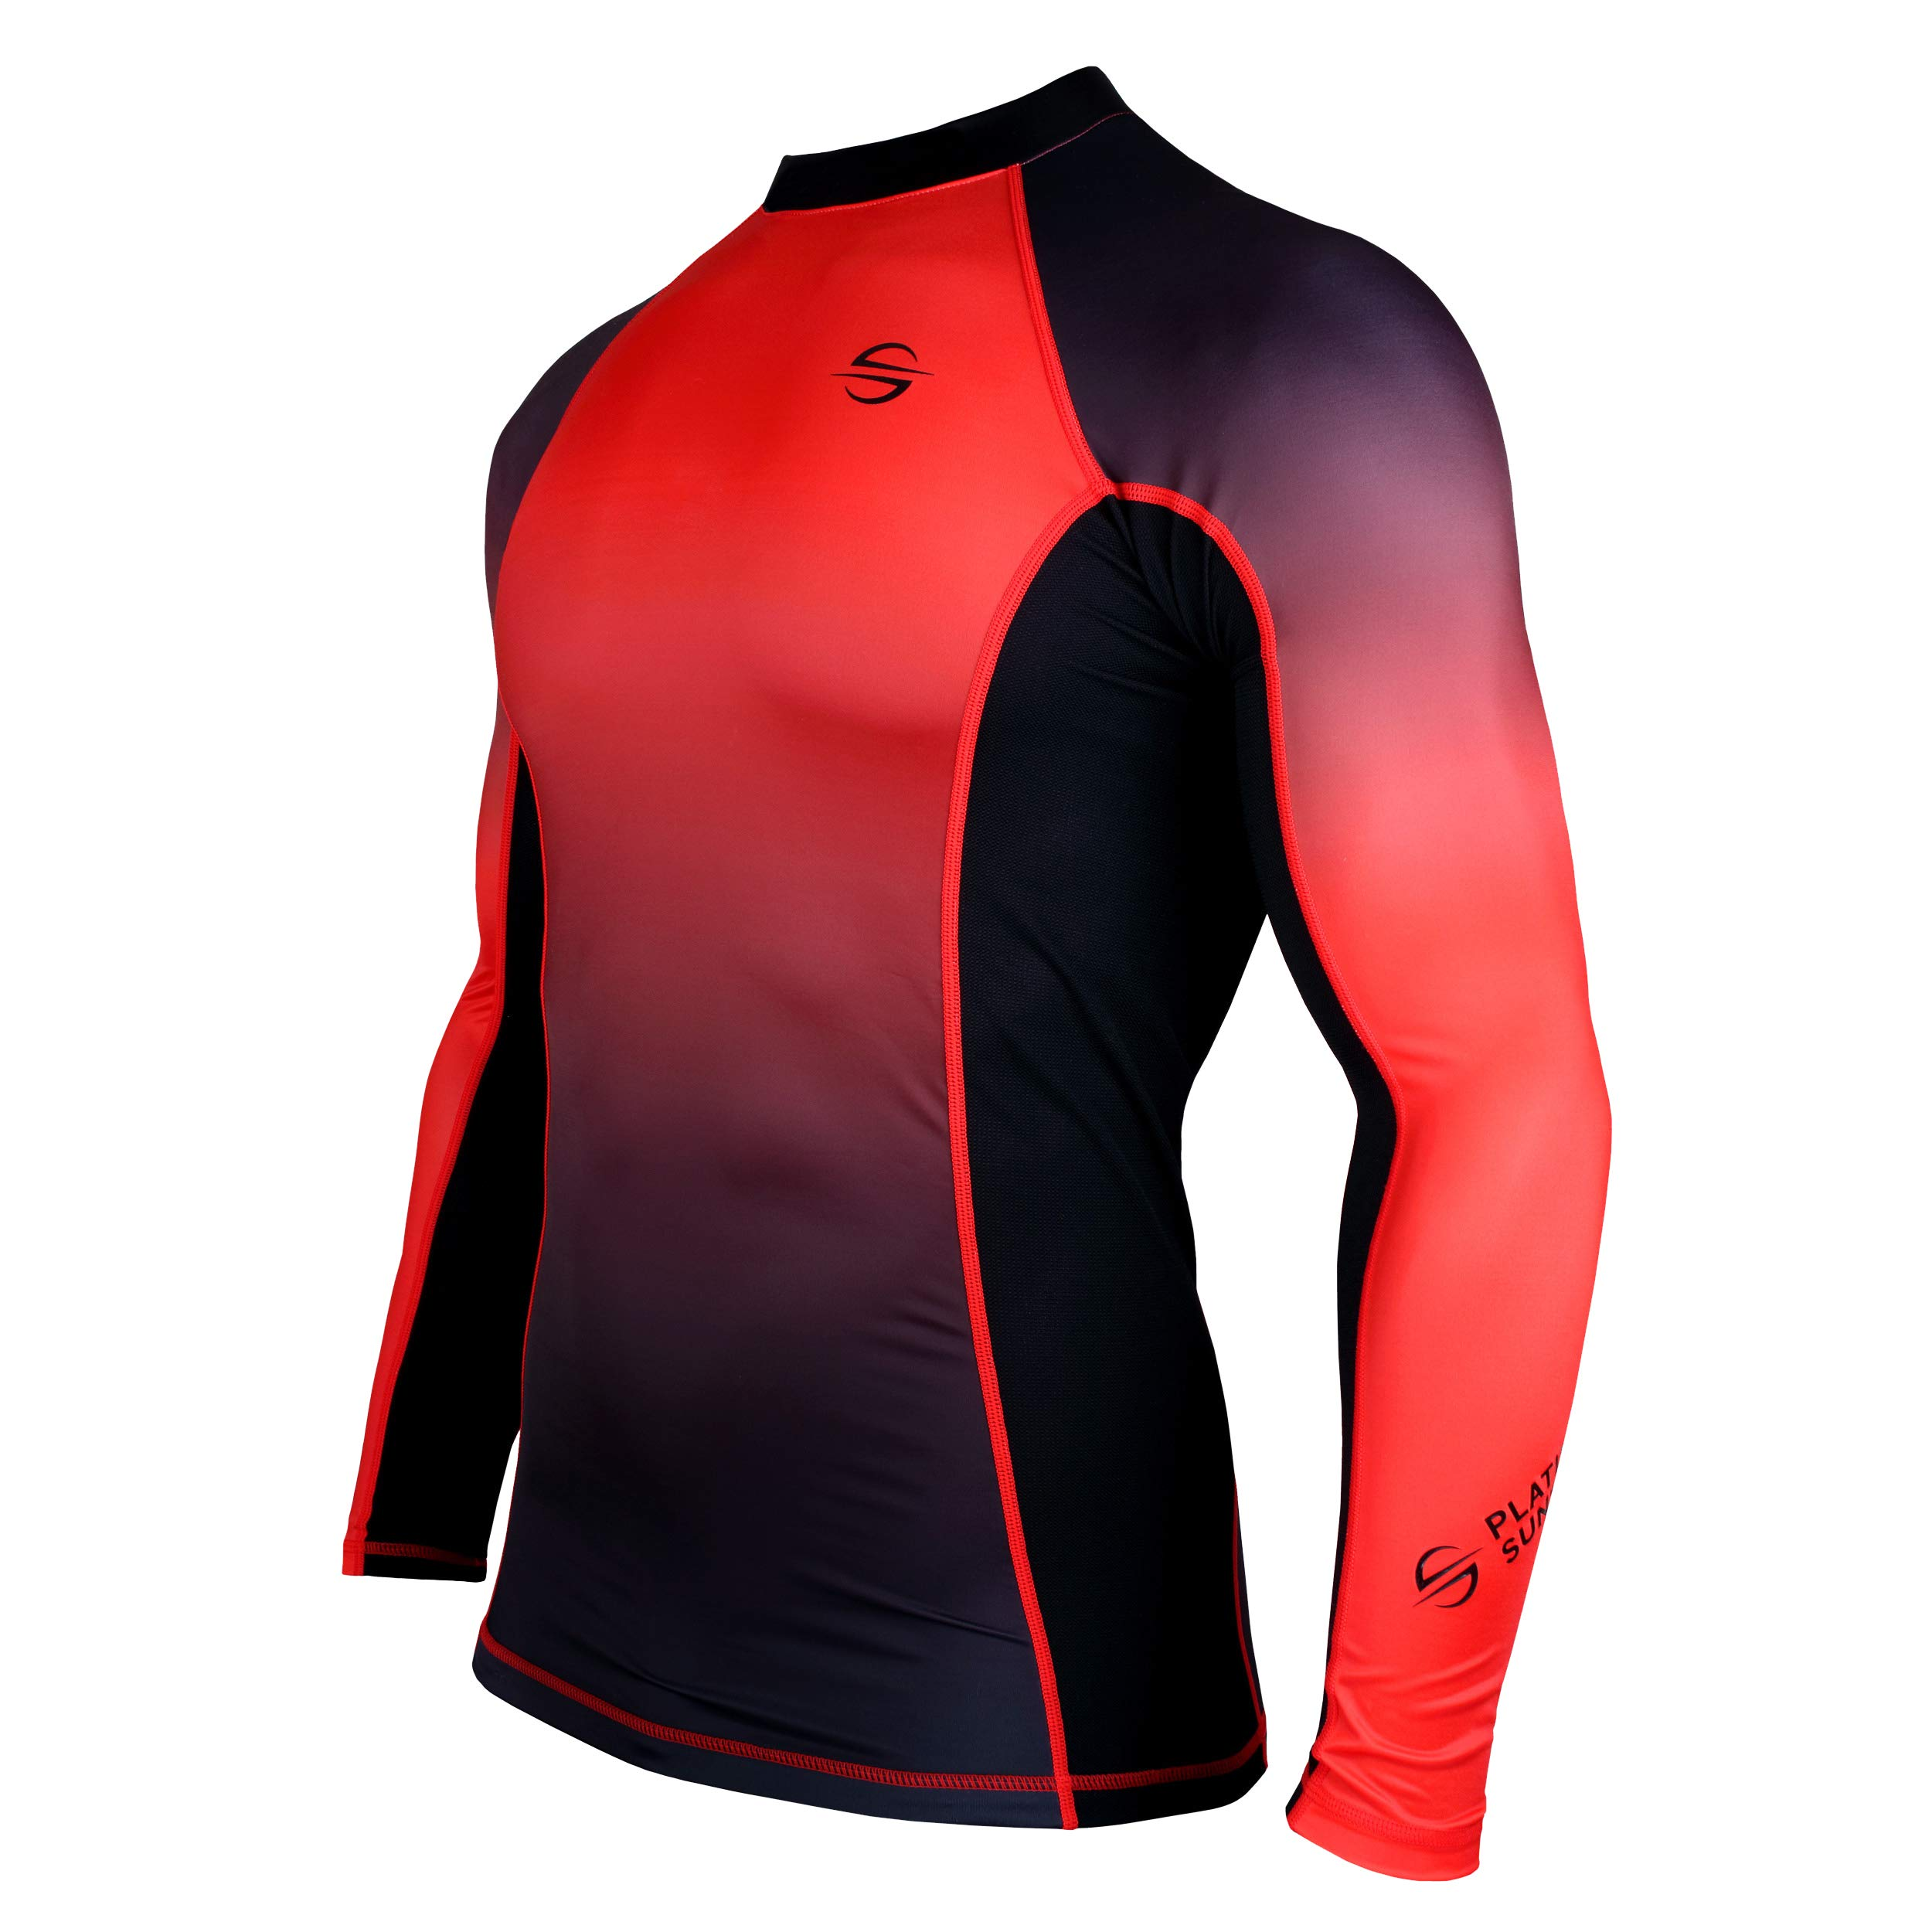 Mens Rash Guard Long Sleeve Surf Shirt Swimsuit - Quick Dry Sun Protection Clothing UPF 30+ (Red, L) by Platinum Sun